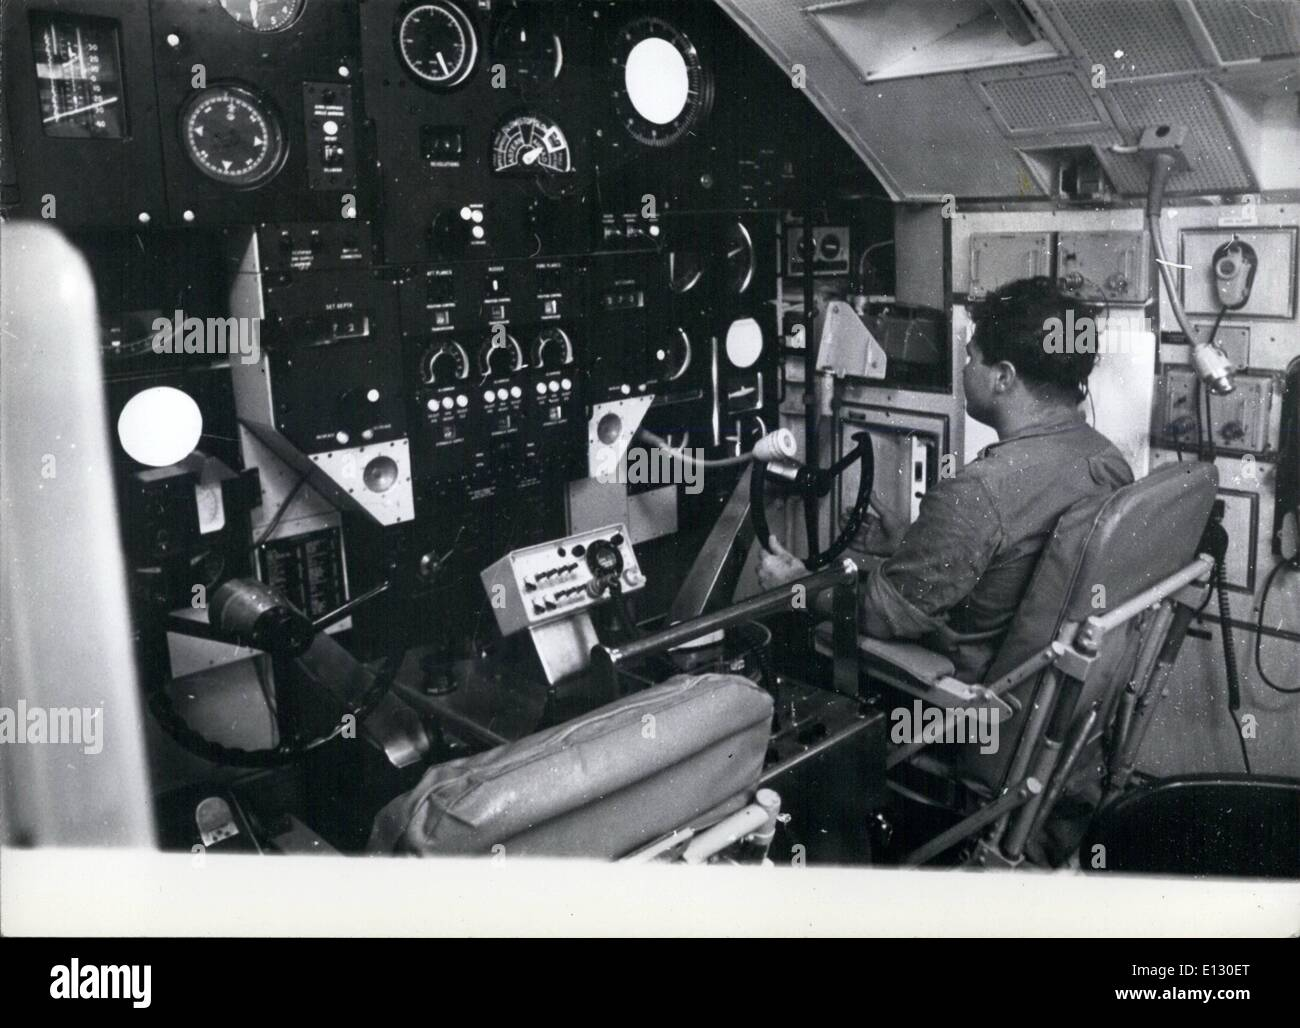 Feb. 26, 2012 - The Control Room - which resembles an aircraft cockpit. - Stock Image